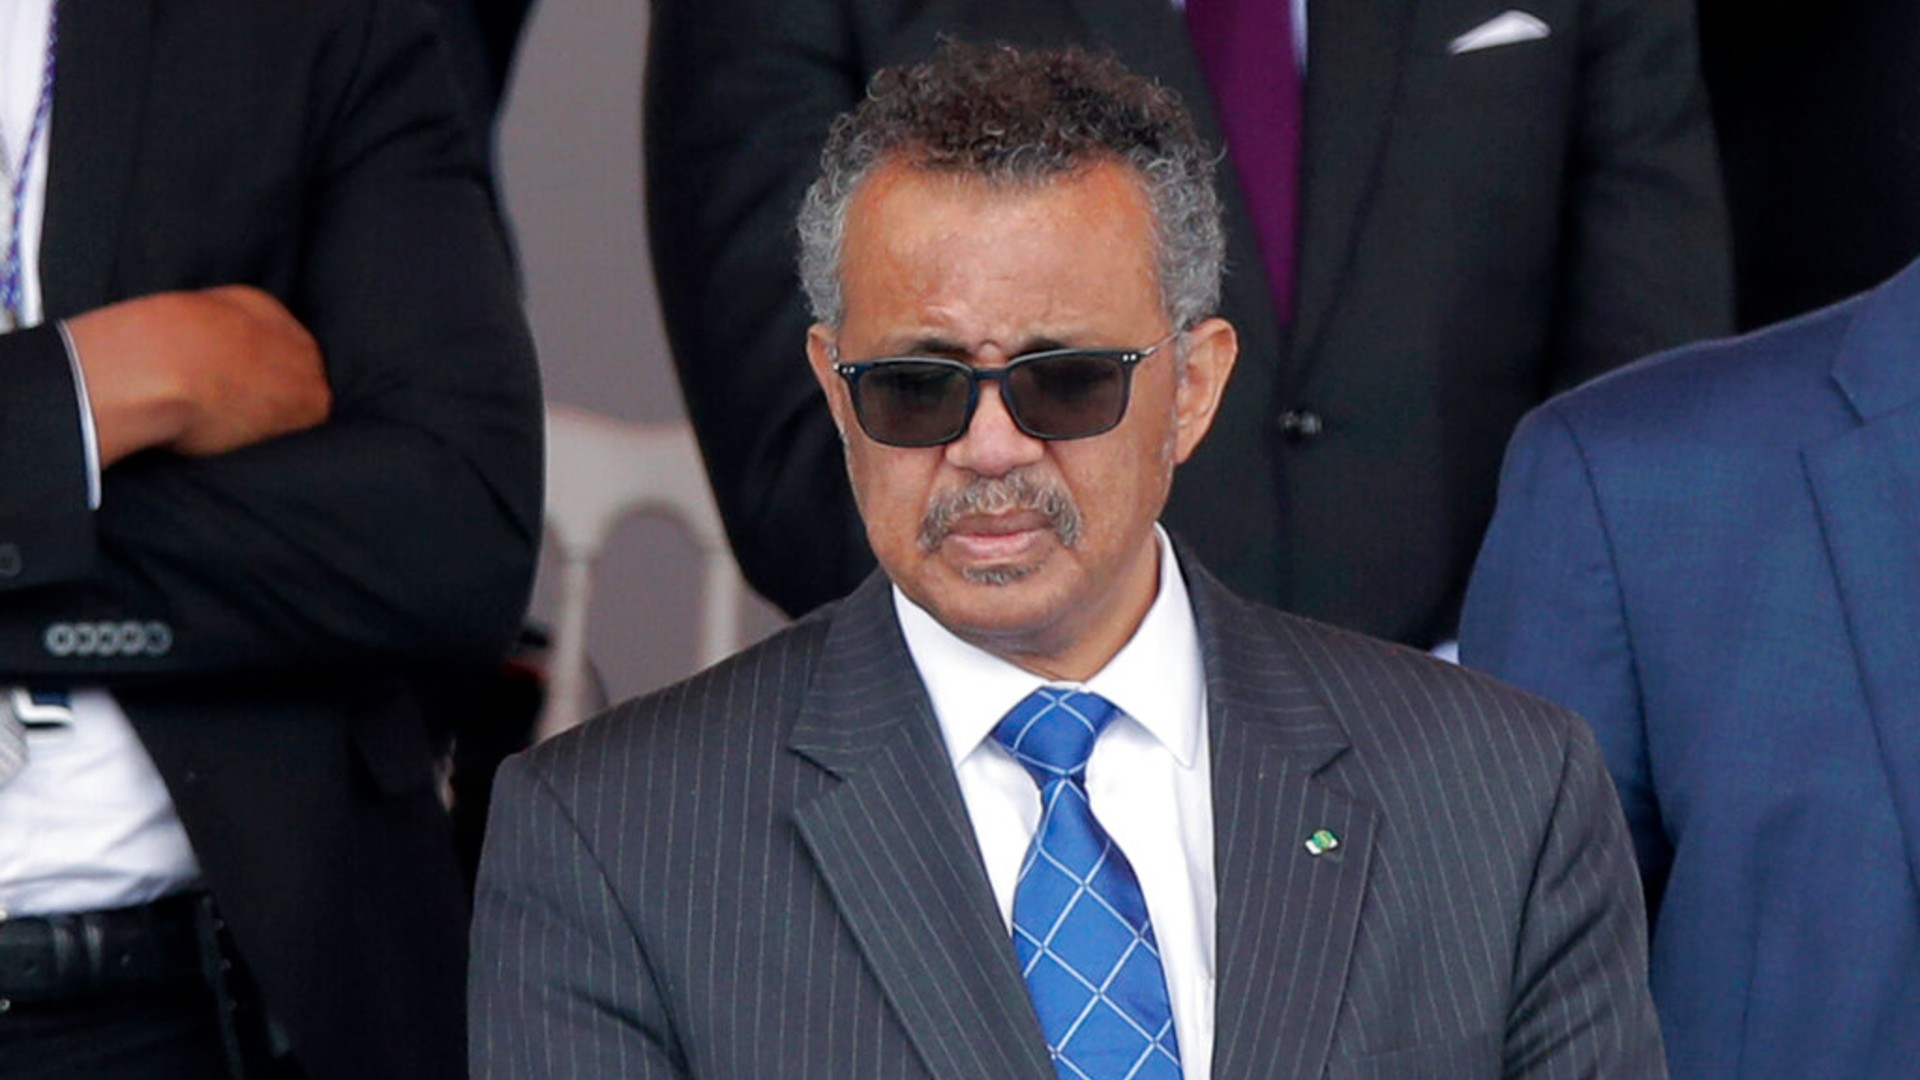 In this file photo dated Tuesday, July 14, 2020, Director General of the World Health Organization, Tedros Adhanom Ghebreyesus, attends the Bastille Day military parade, in Paris. (AP Photo/Christophe Ena, FILE)